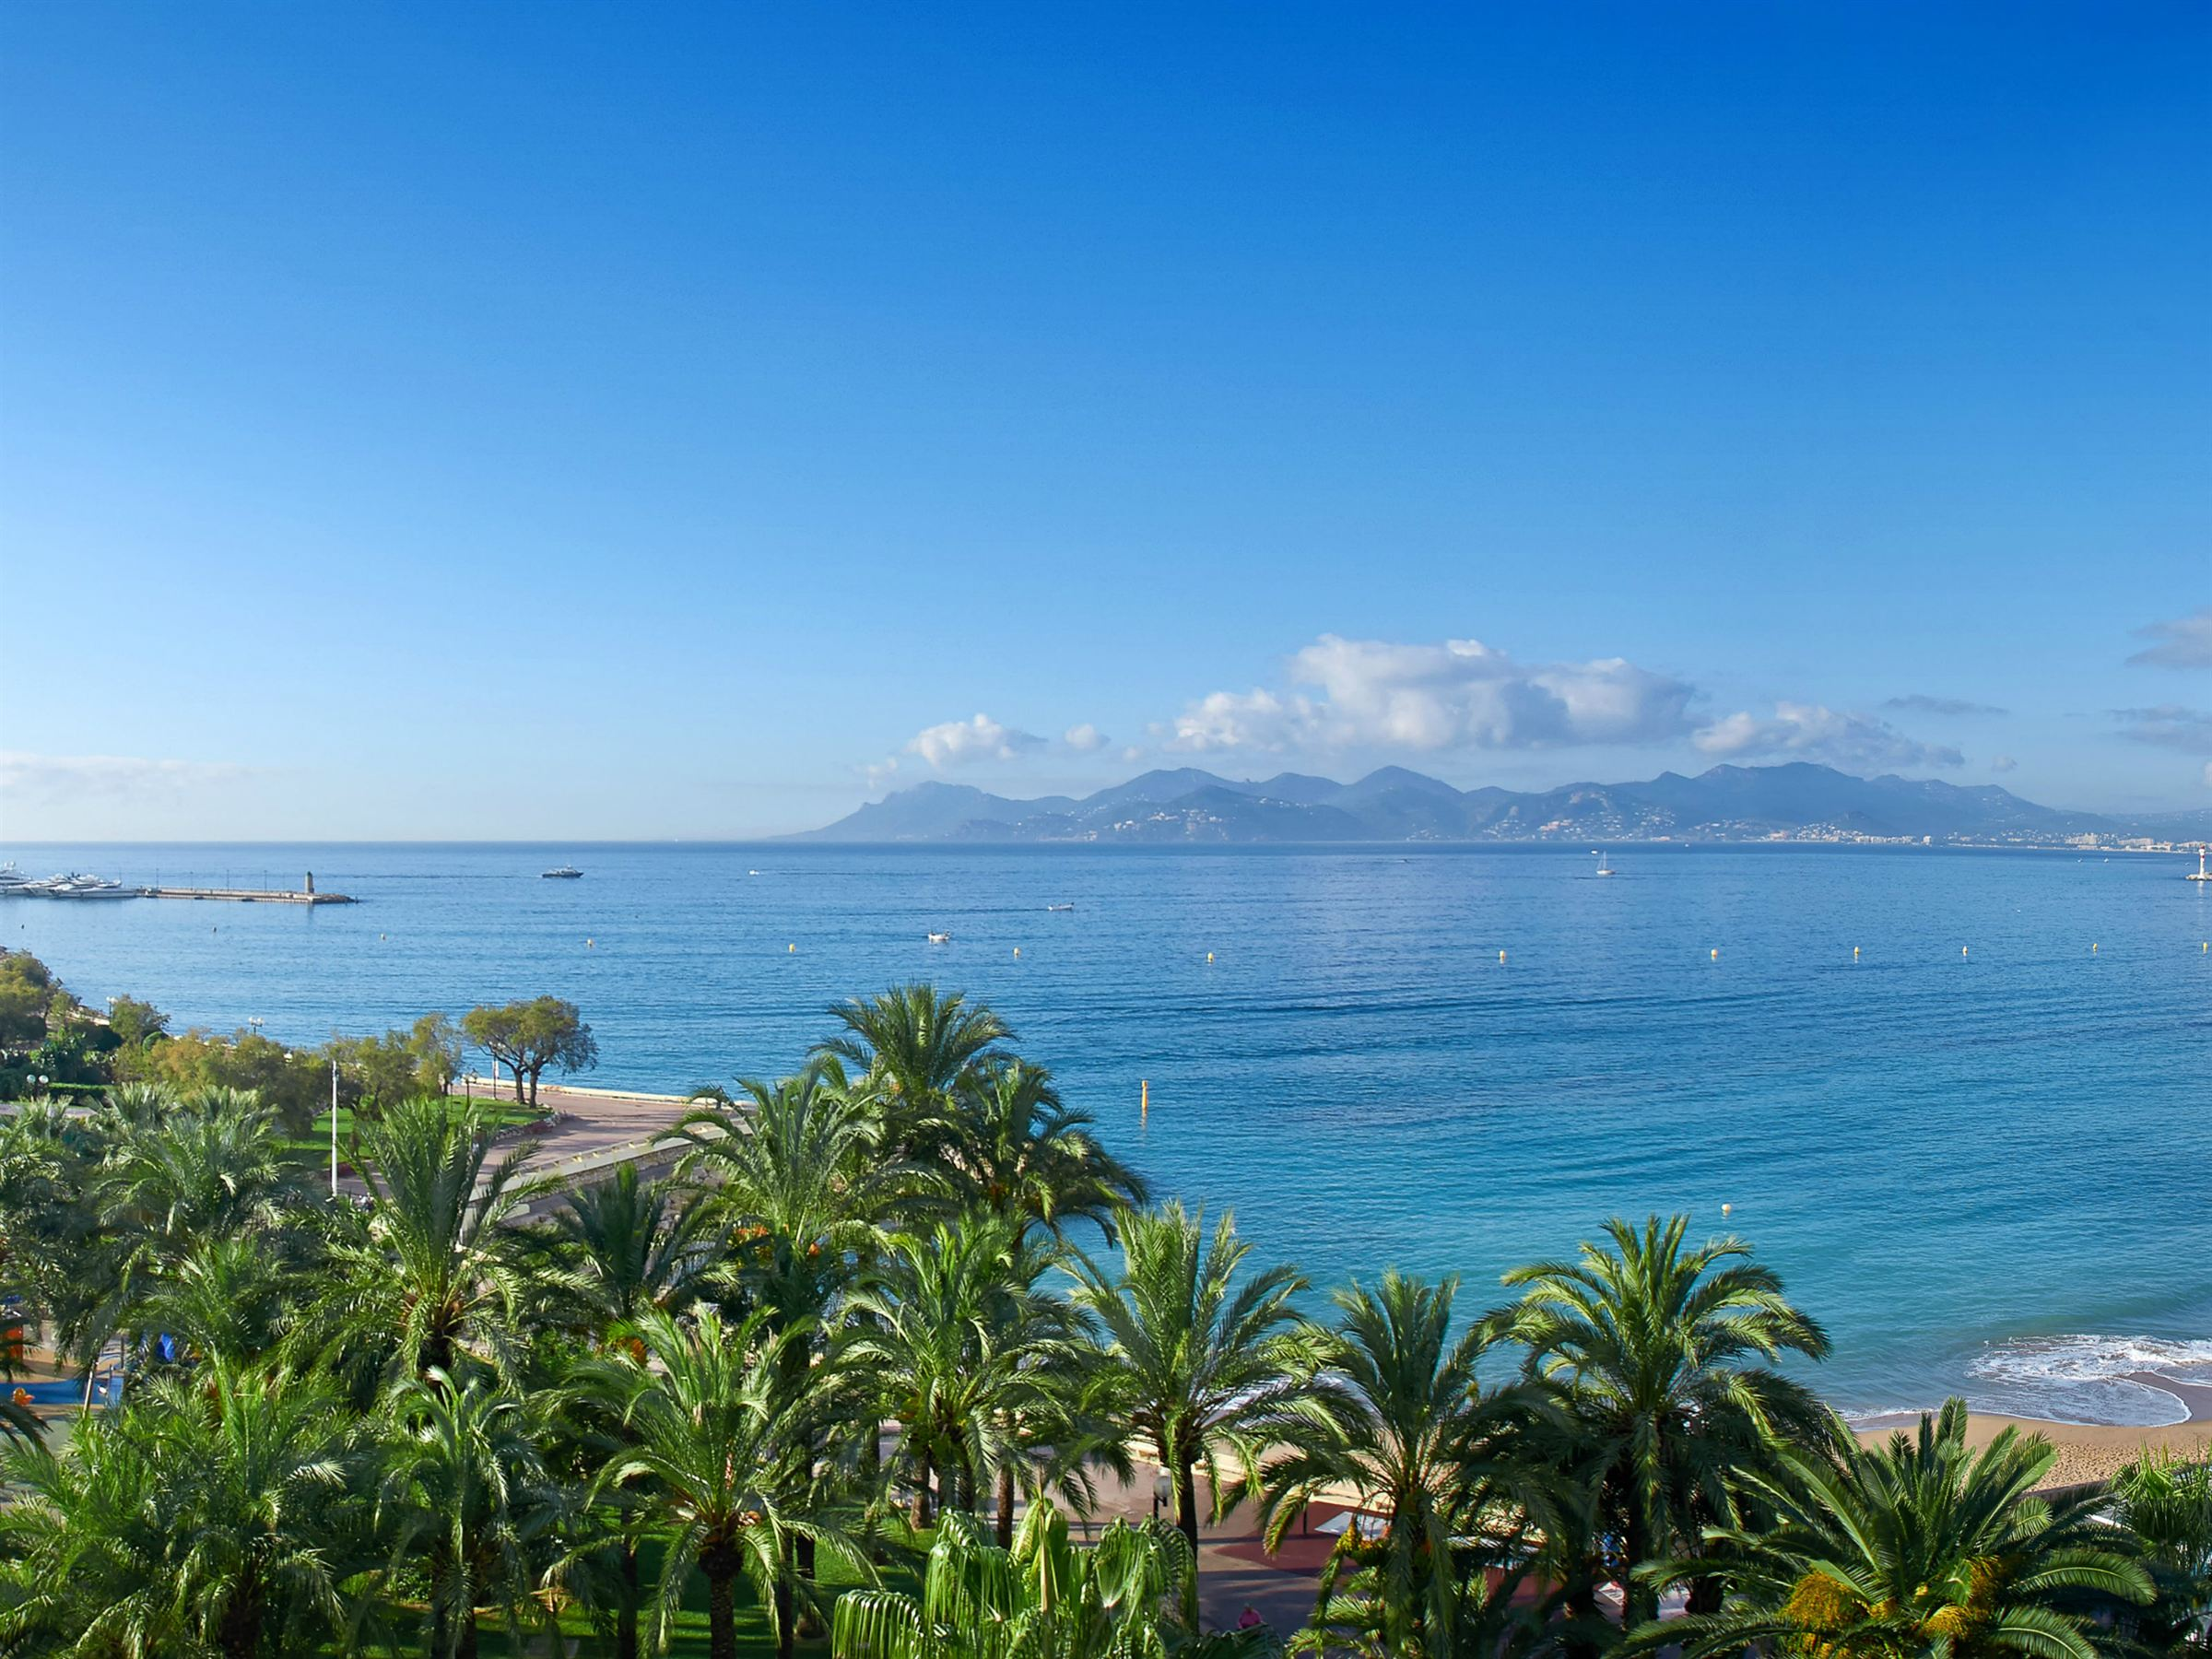 Apartment for Sale at Luxurious apartment for sale with panoramic sea view on the Croisette cn5011 Cannes, Provence-Alpes-Cote D'Azur 06400 France